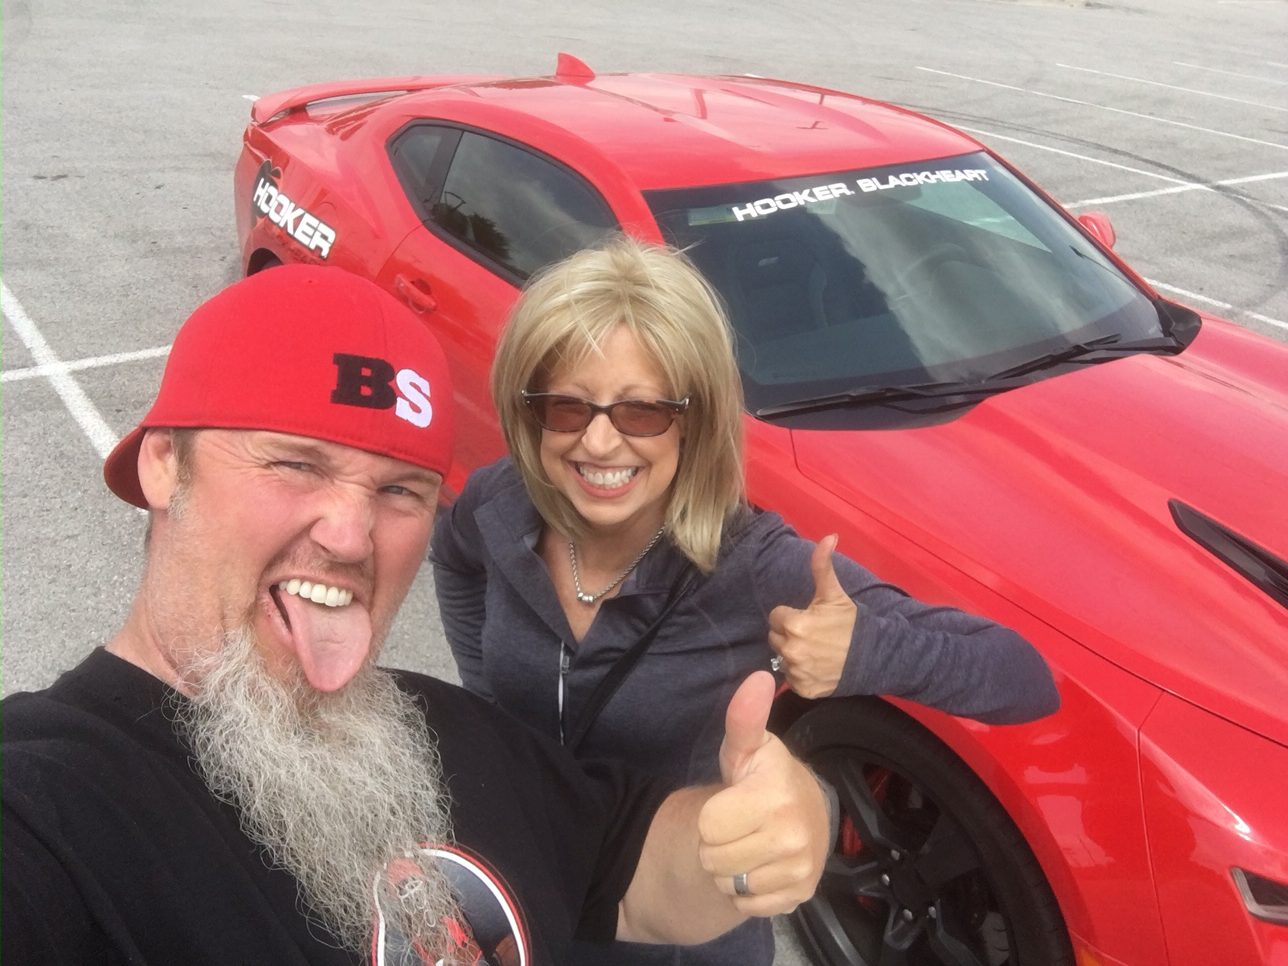 We Stole The Hooker Blackheart 2016 Camaro And Are Driving It To LS Fest Right Now! Join Us!